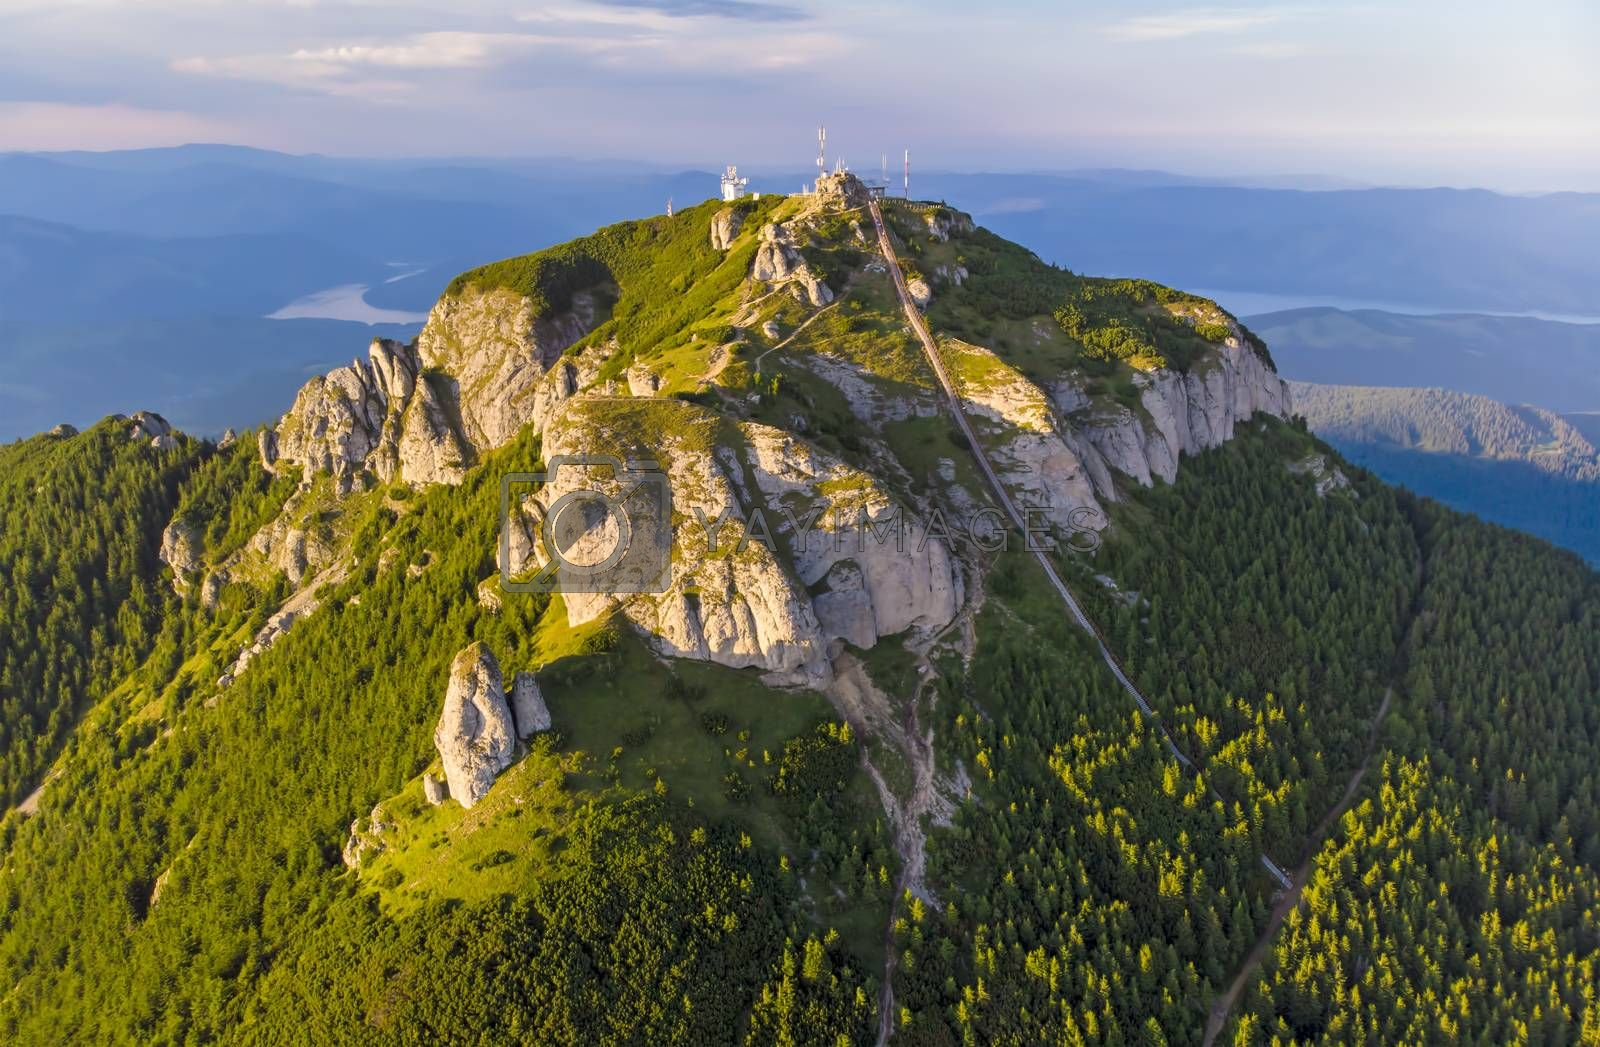 Royalty free image of Aerial view of mountain peak by savcoco